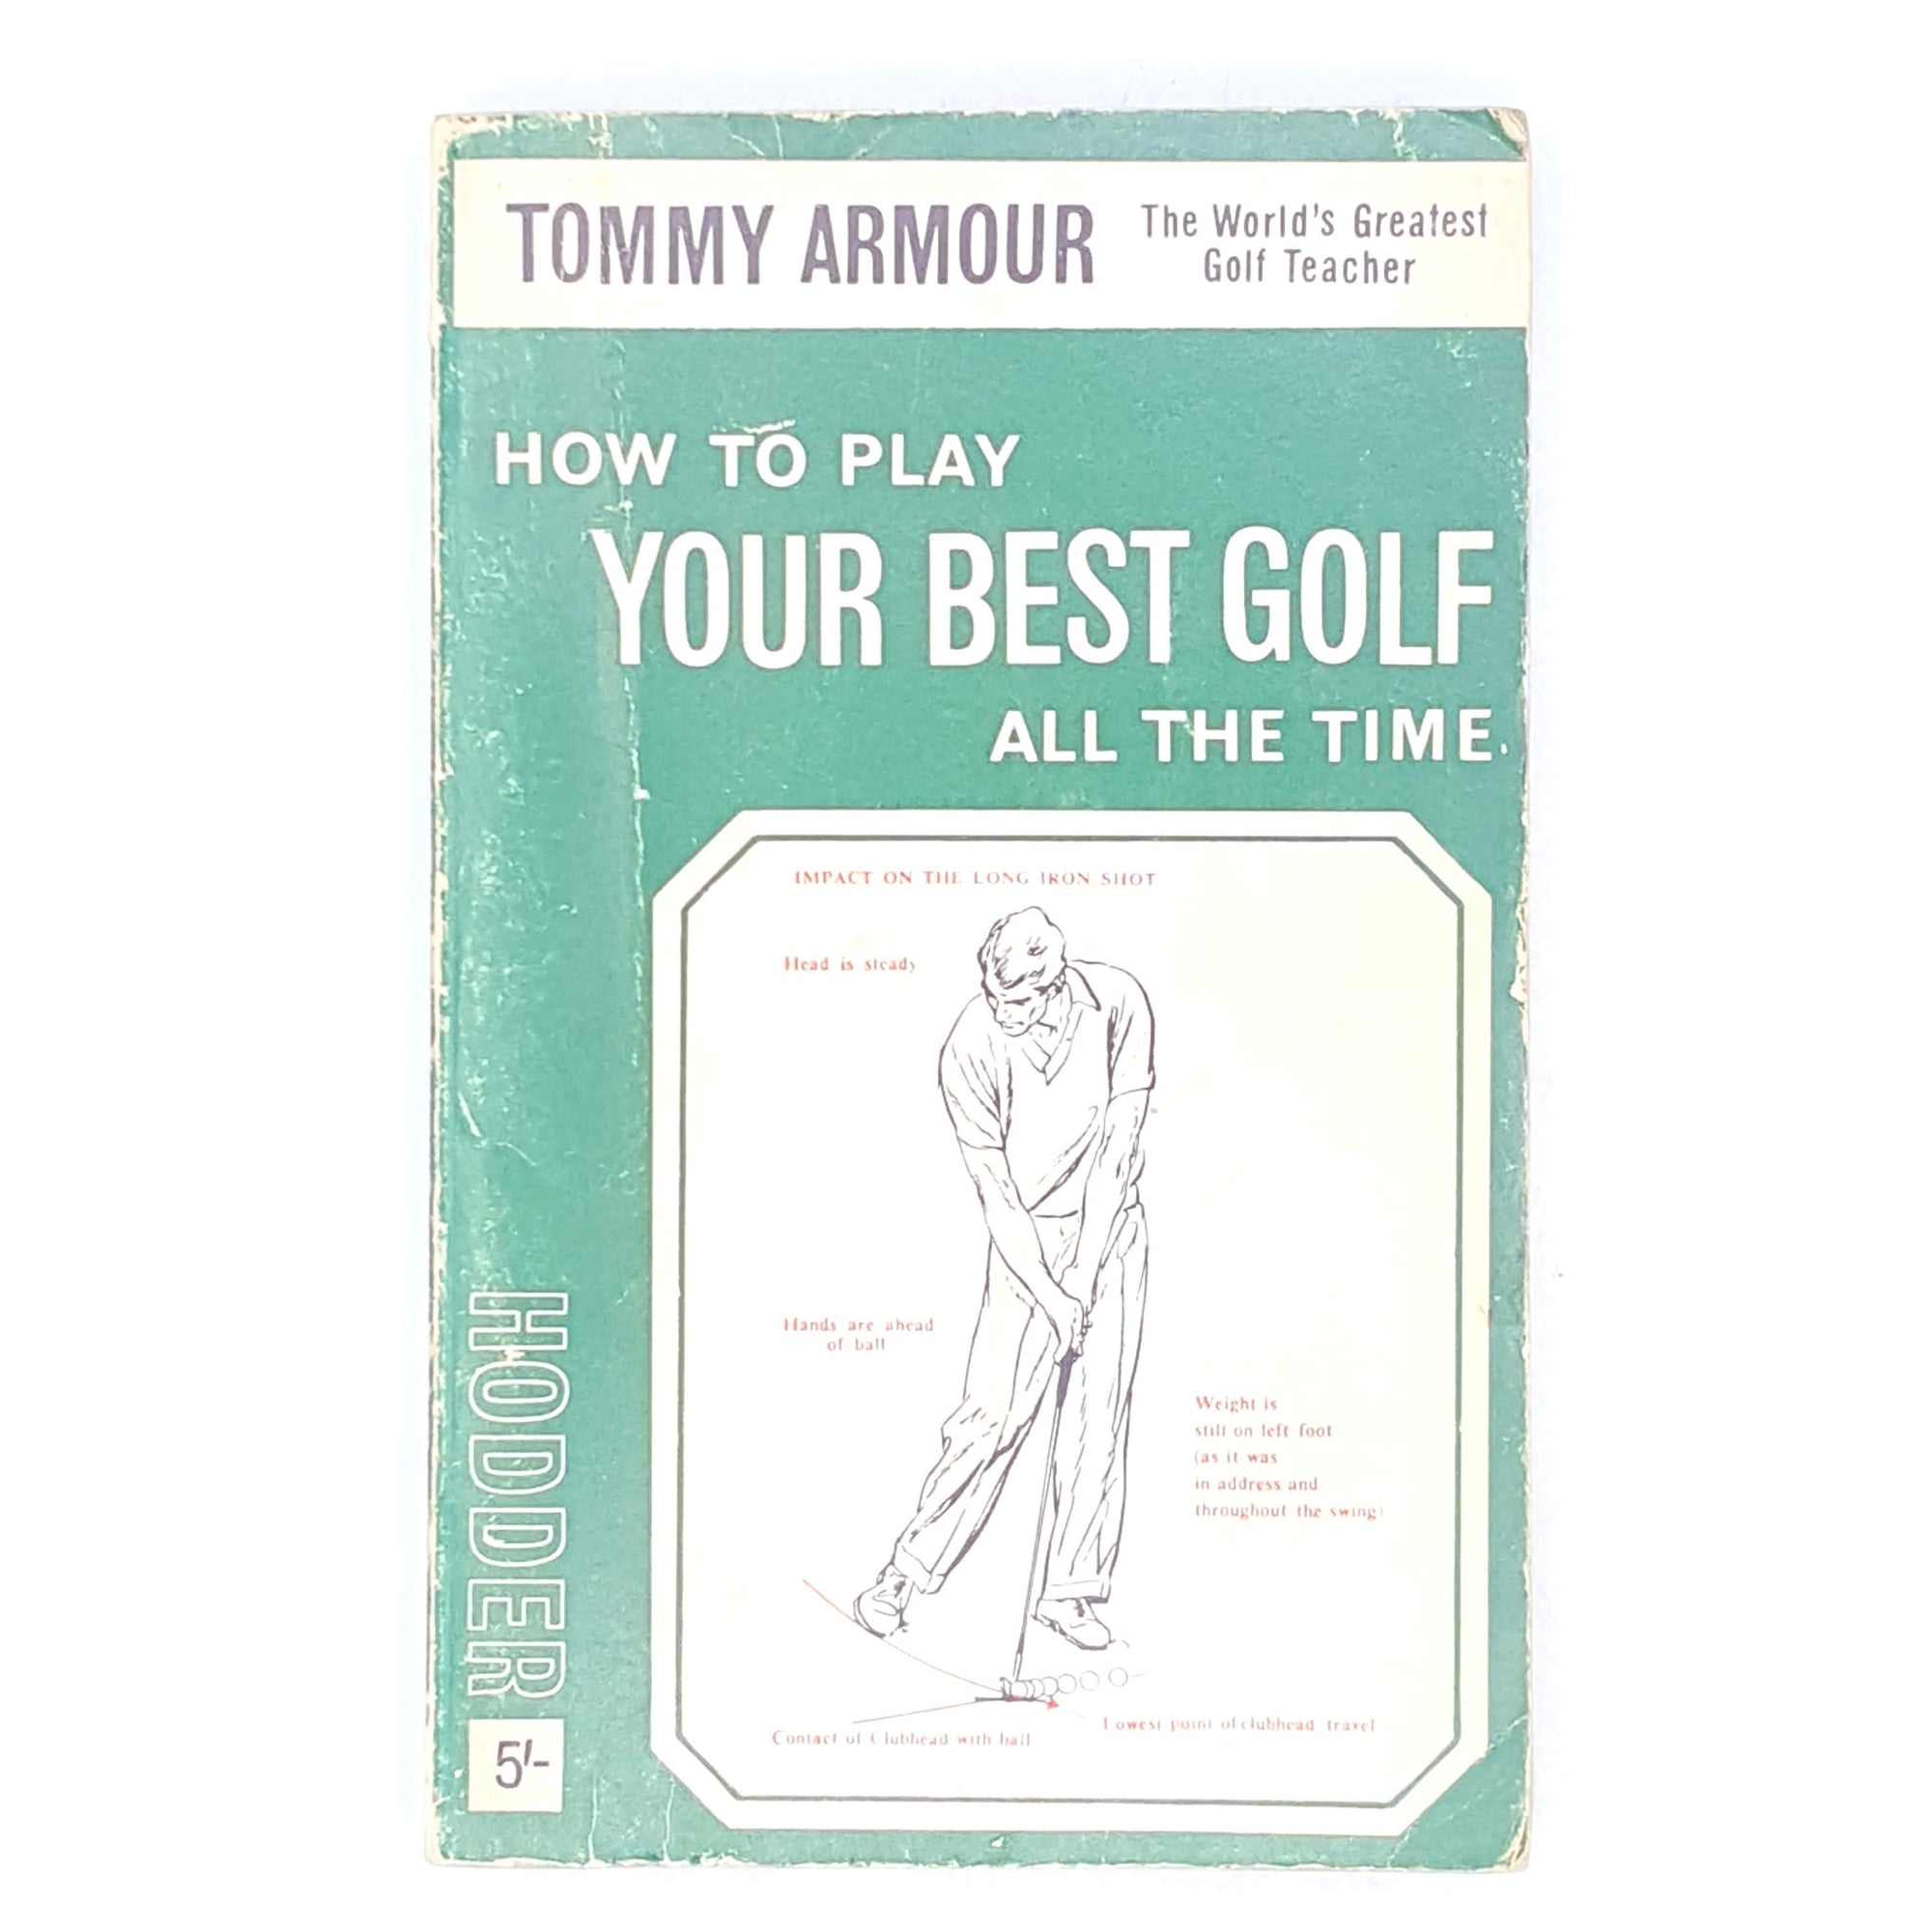 patterned-decorative-sport-old-golf-books-vintage-thrift-country-house-library-1965-antique-how-to-play-your-best-golf-classic-